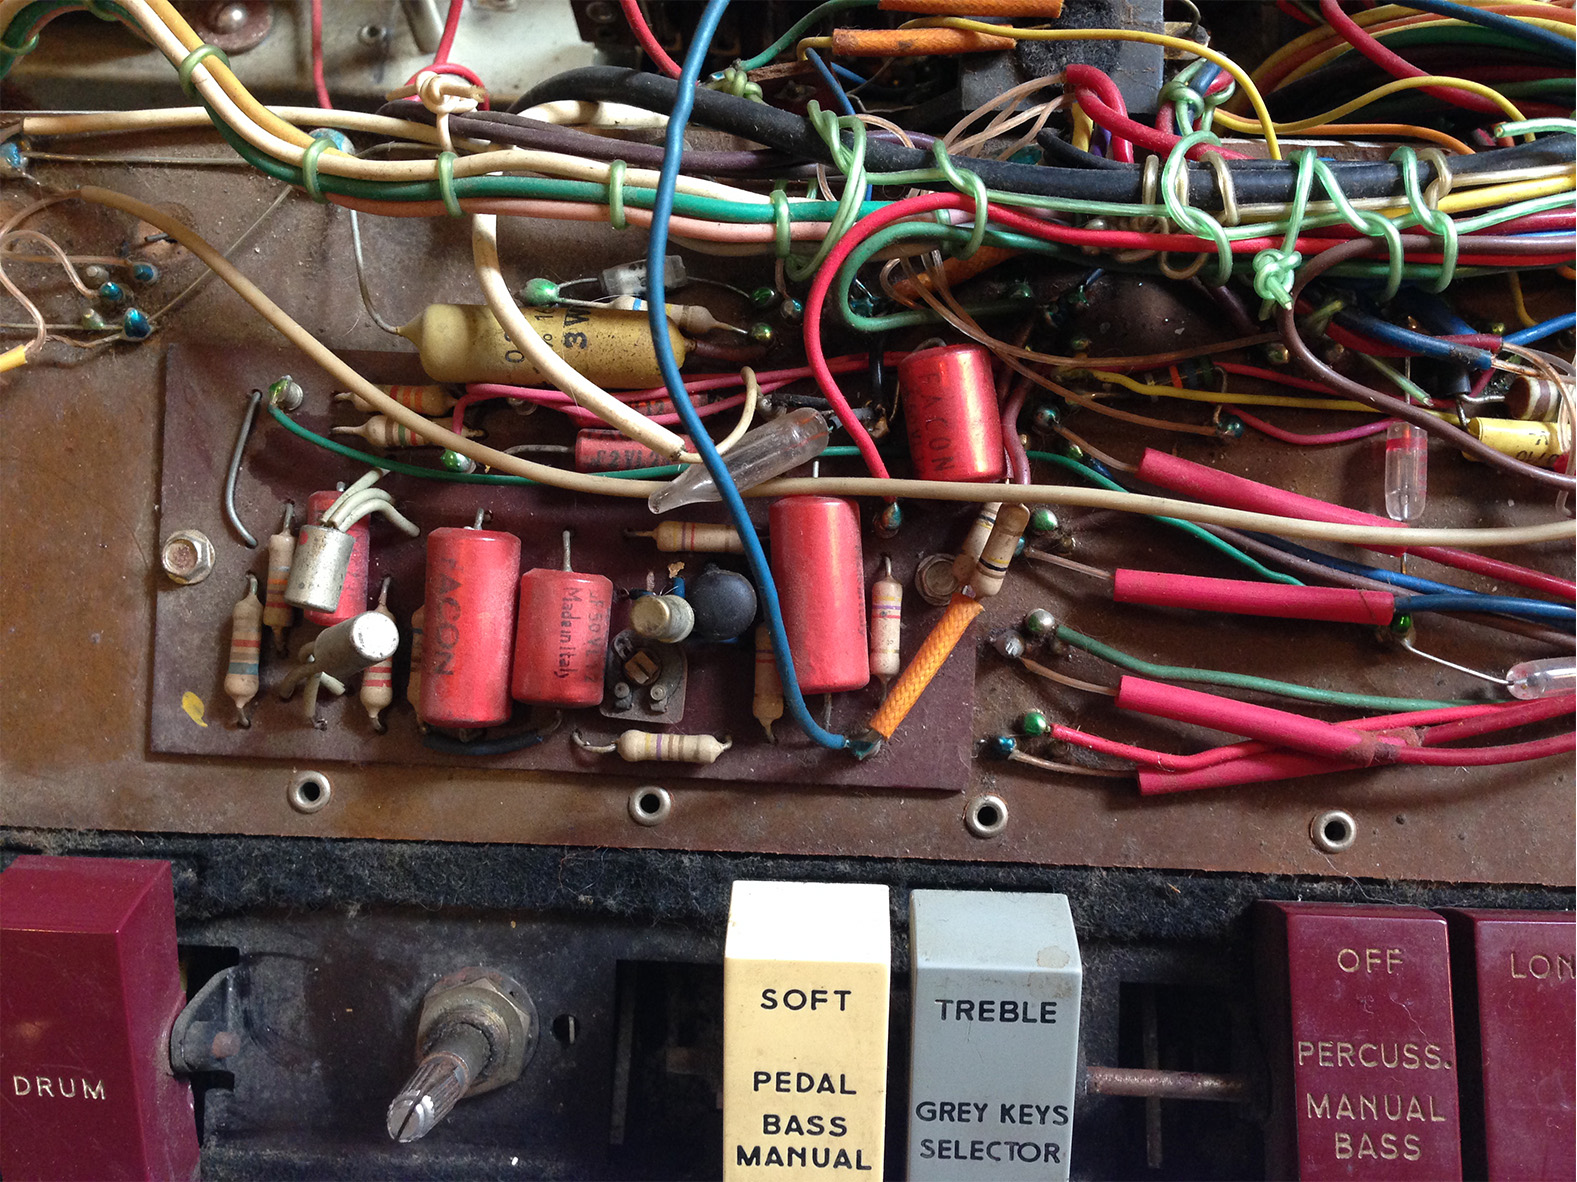 8-part of the percussion envelope circuitry in a farfisa compact deluxe